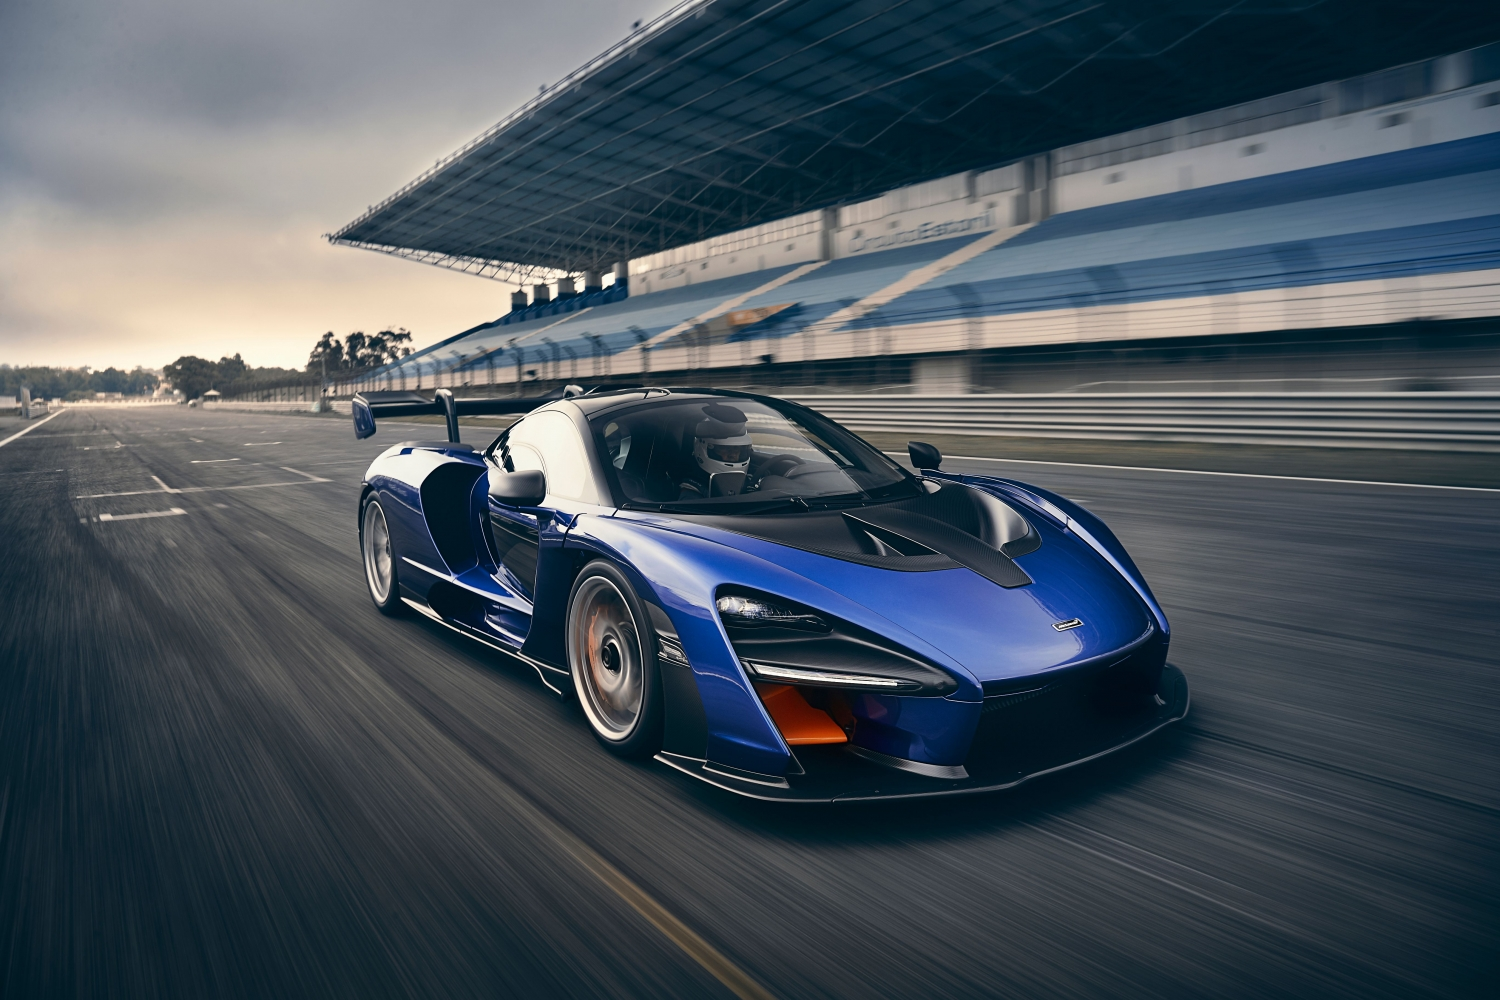 McLaren Senna breaks four major US track performance test records